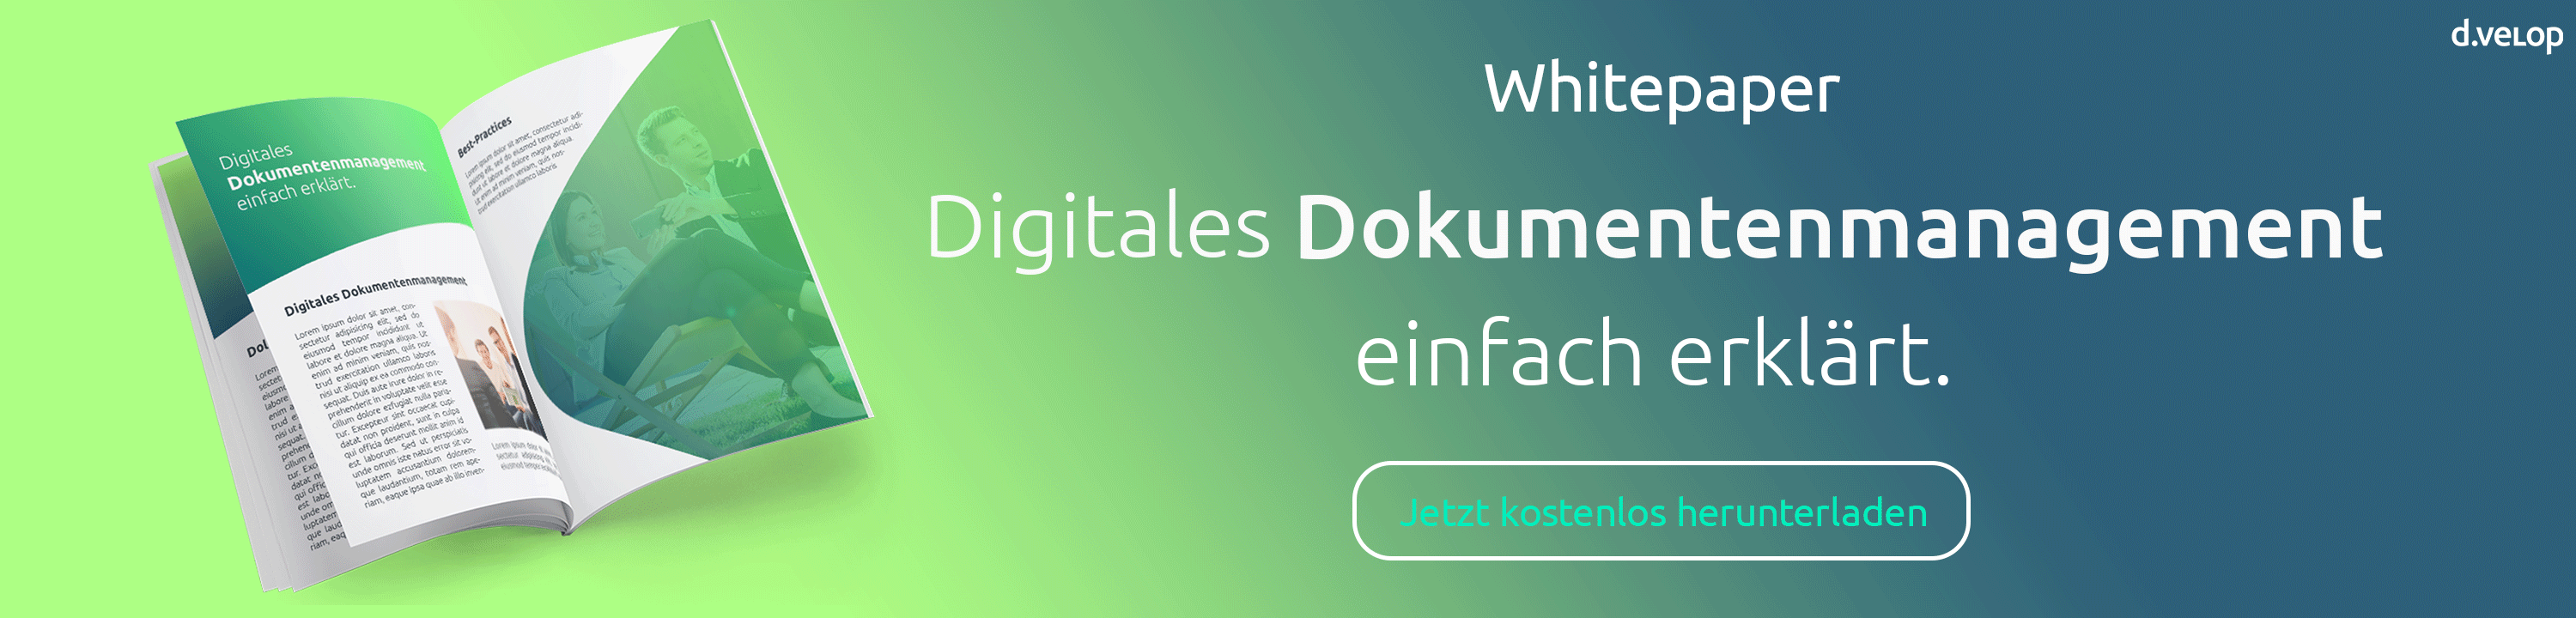 Whitepaper Digitales Dokumentenmanagement - Dokumentenablage